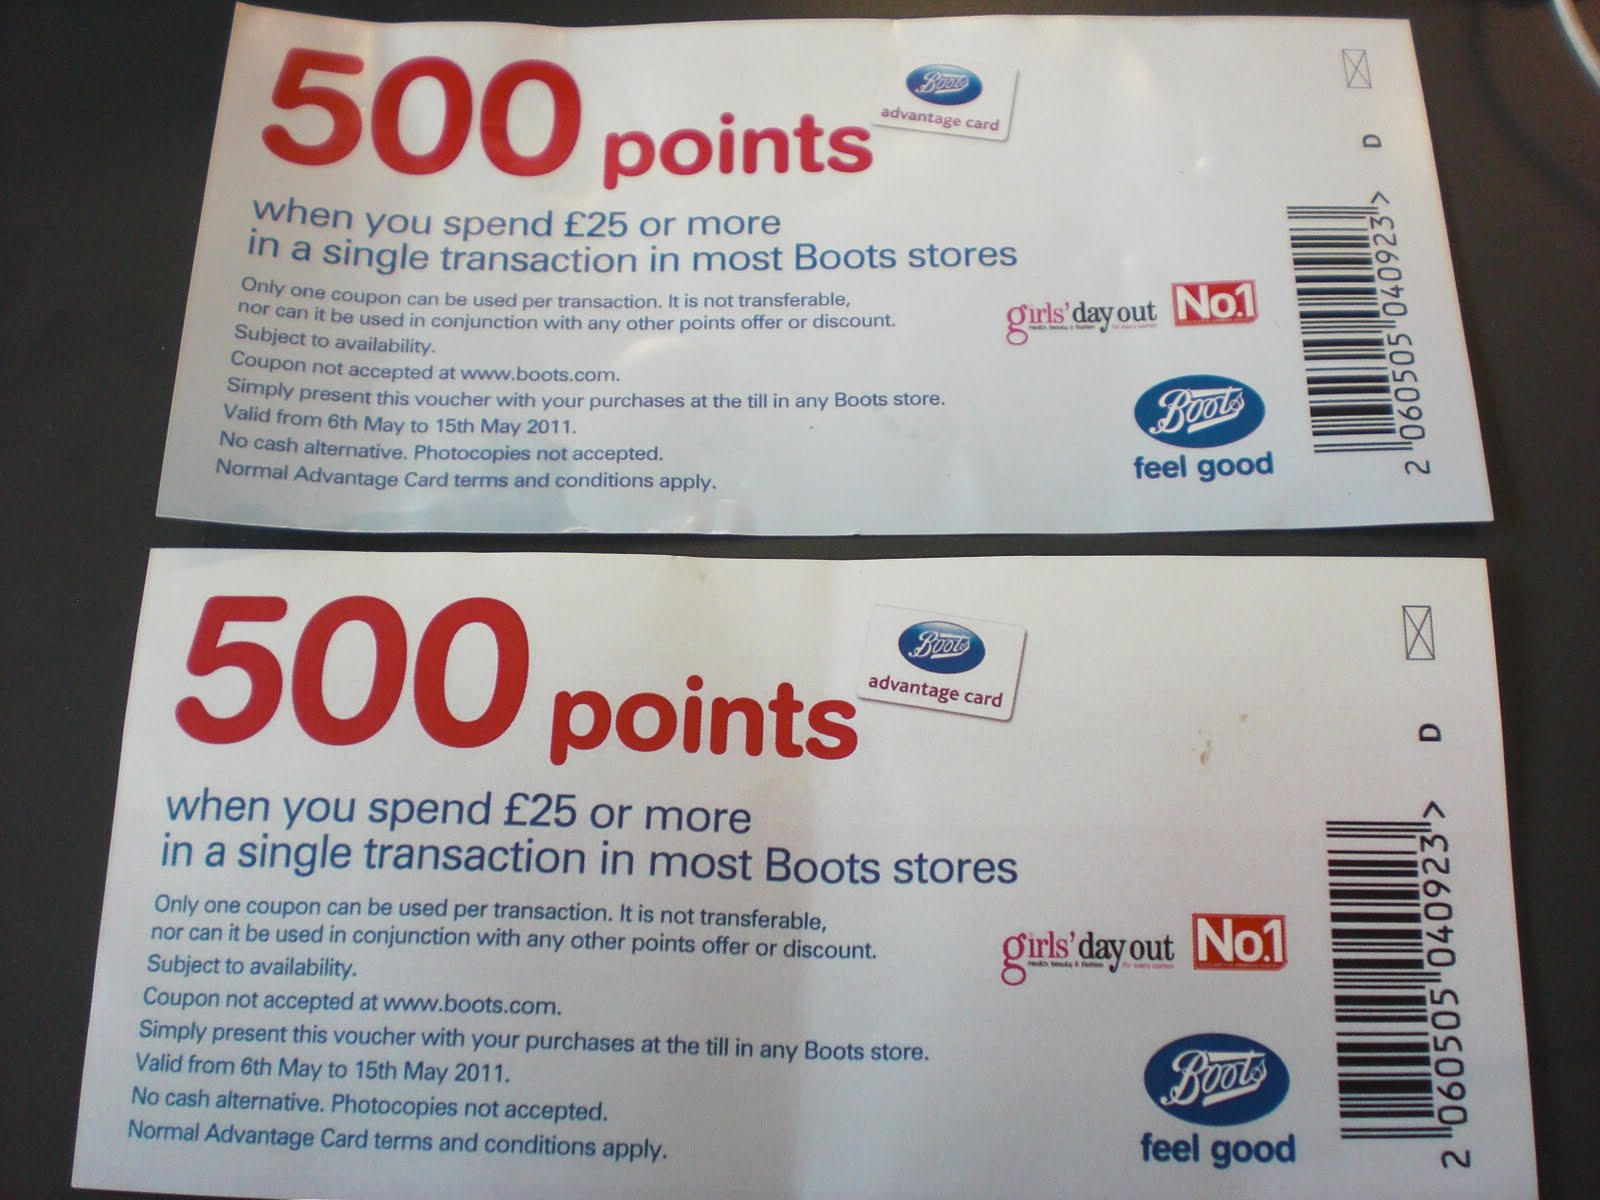 View our complete range of the latest offers and discounts available now at Boots. Shop today & collect 4 Advantage Card Points for every pound you spend.